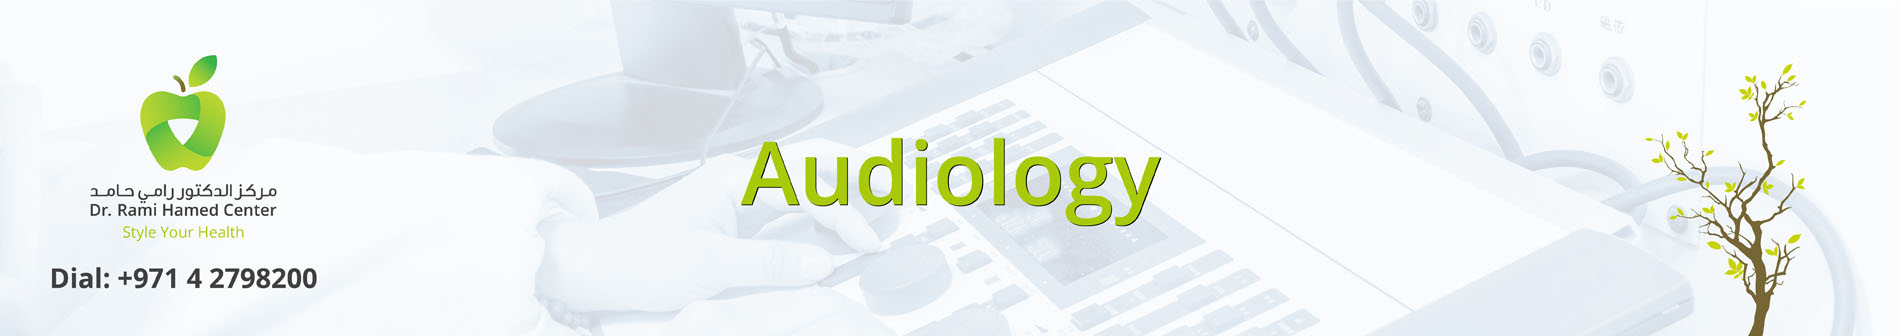 Dubai Audiology Clinic Speech Therapy